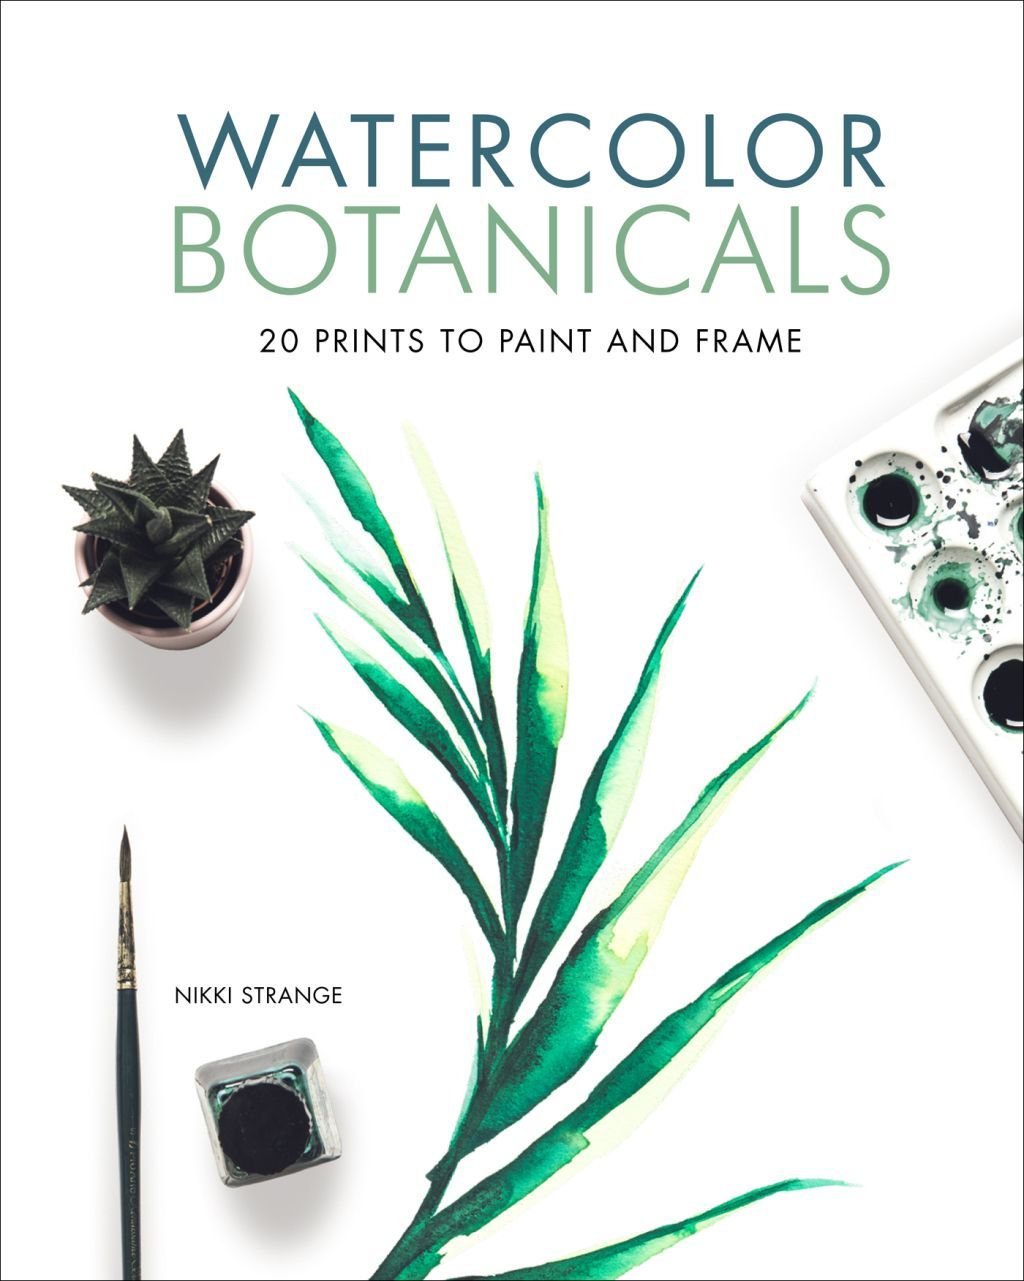 Watercolor Botanicals Ebook In 2020 Watercolor Plants Plant